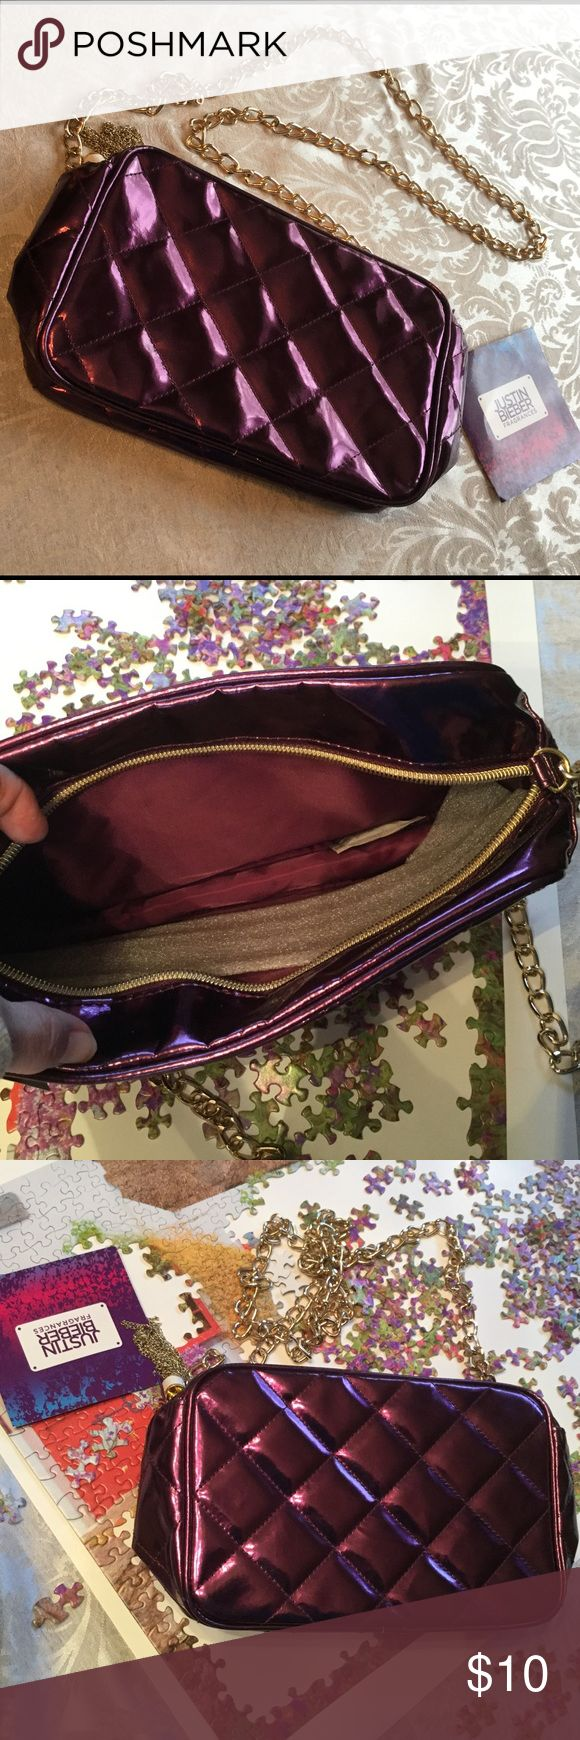 """🆕 Justin Bieber Limited Edition Bag ! 💜 Justin Bieber Limited Edition ! It's about 9 1/2 by 6"""" by 3"""" ! Nice size ! Never used ! A gold tone chunky 52"""" chain ! Cross body or shoulder bag ! Quilted PVC inside is polyester lining ! Adorable zip tassel ! Glossy purple ! From Macy's ! 💜 Justin Bieber Bags"""